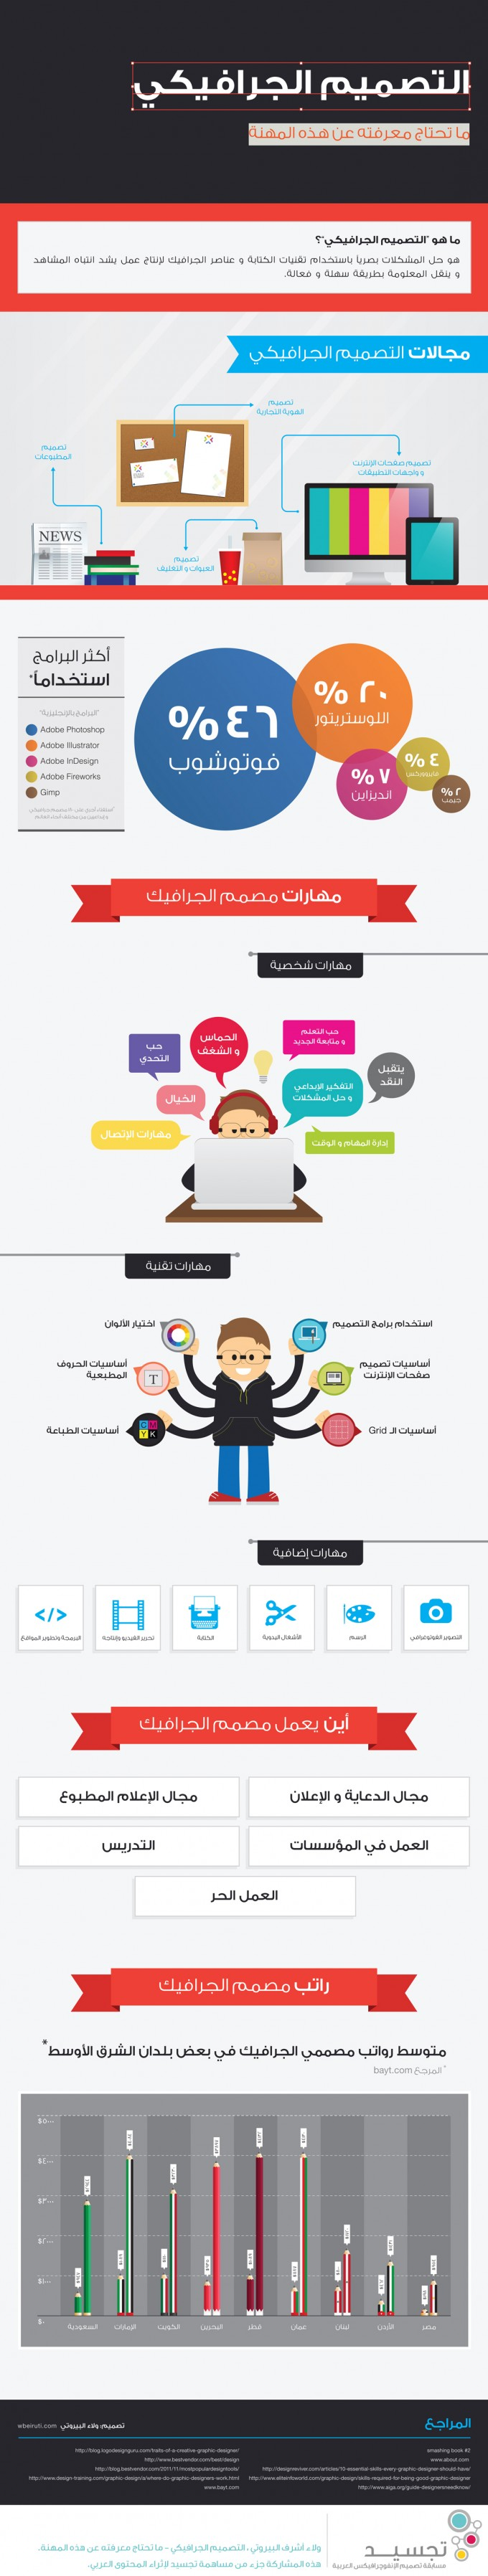 infograhphic graphic designer skills and tools